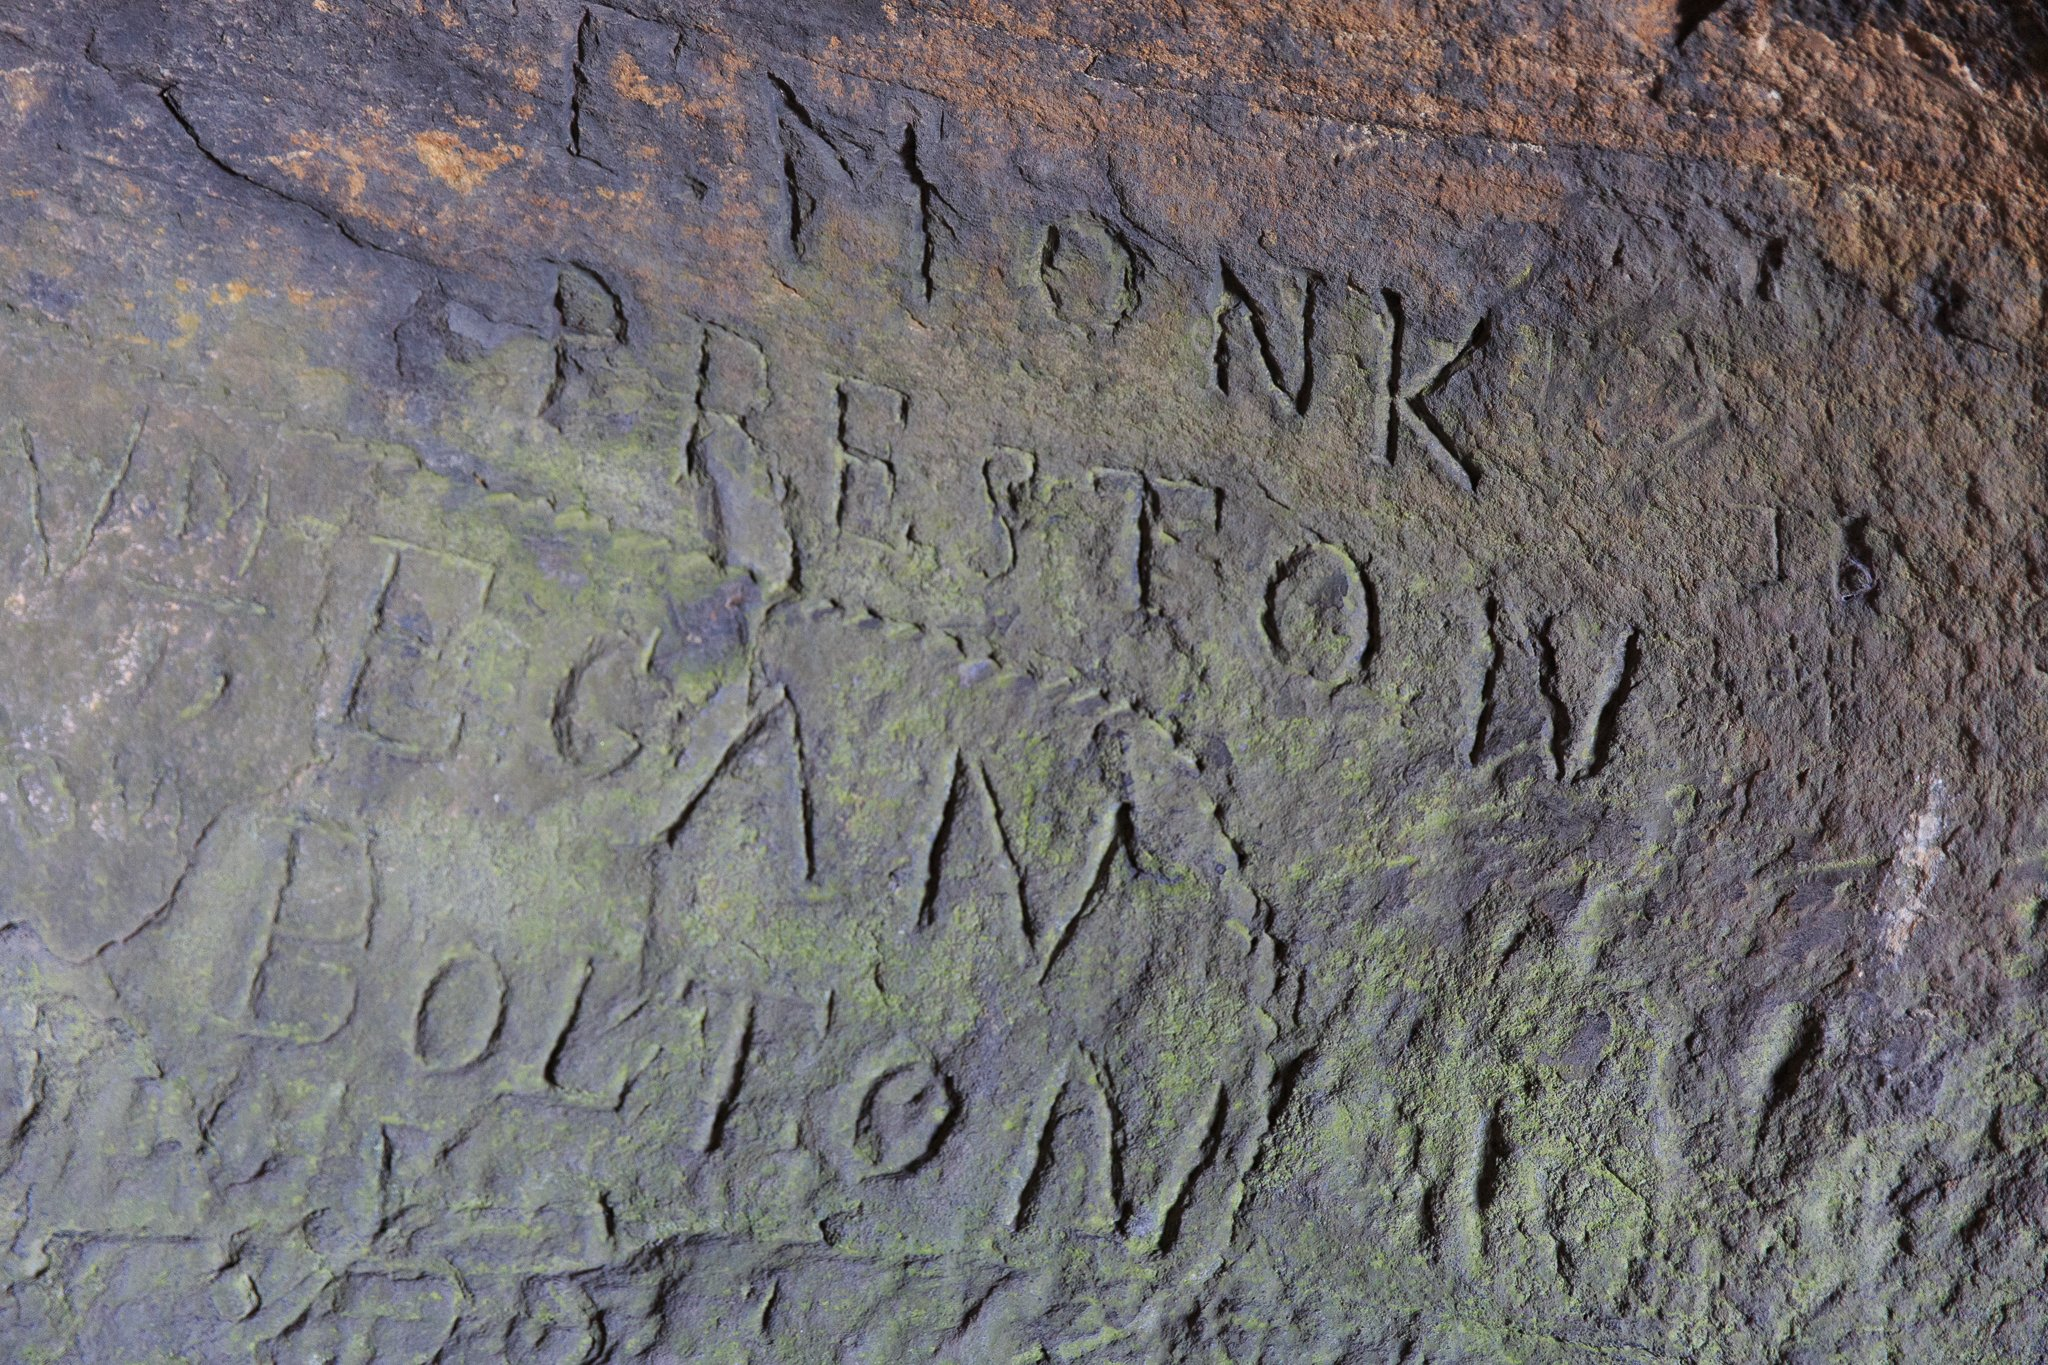 Robin Hood's Cave in Stanage Edge